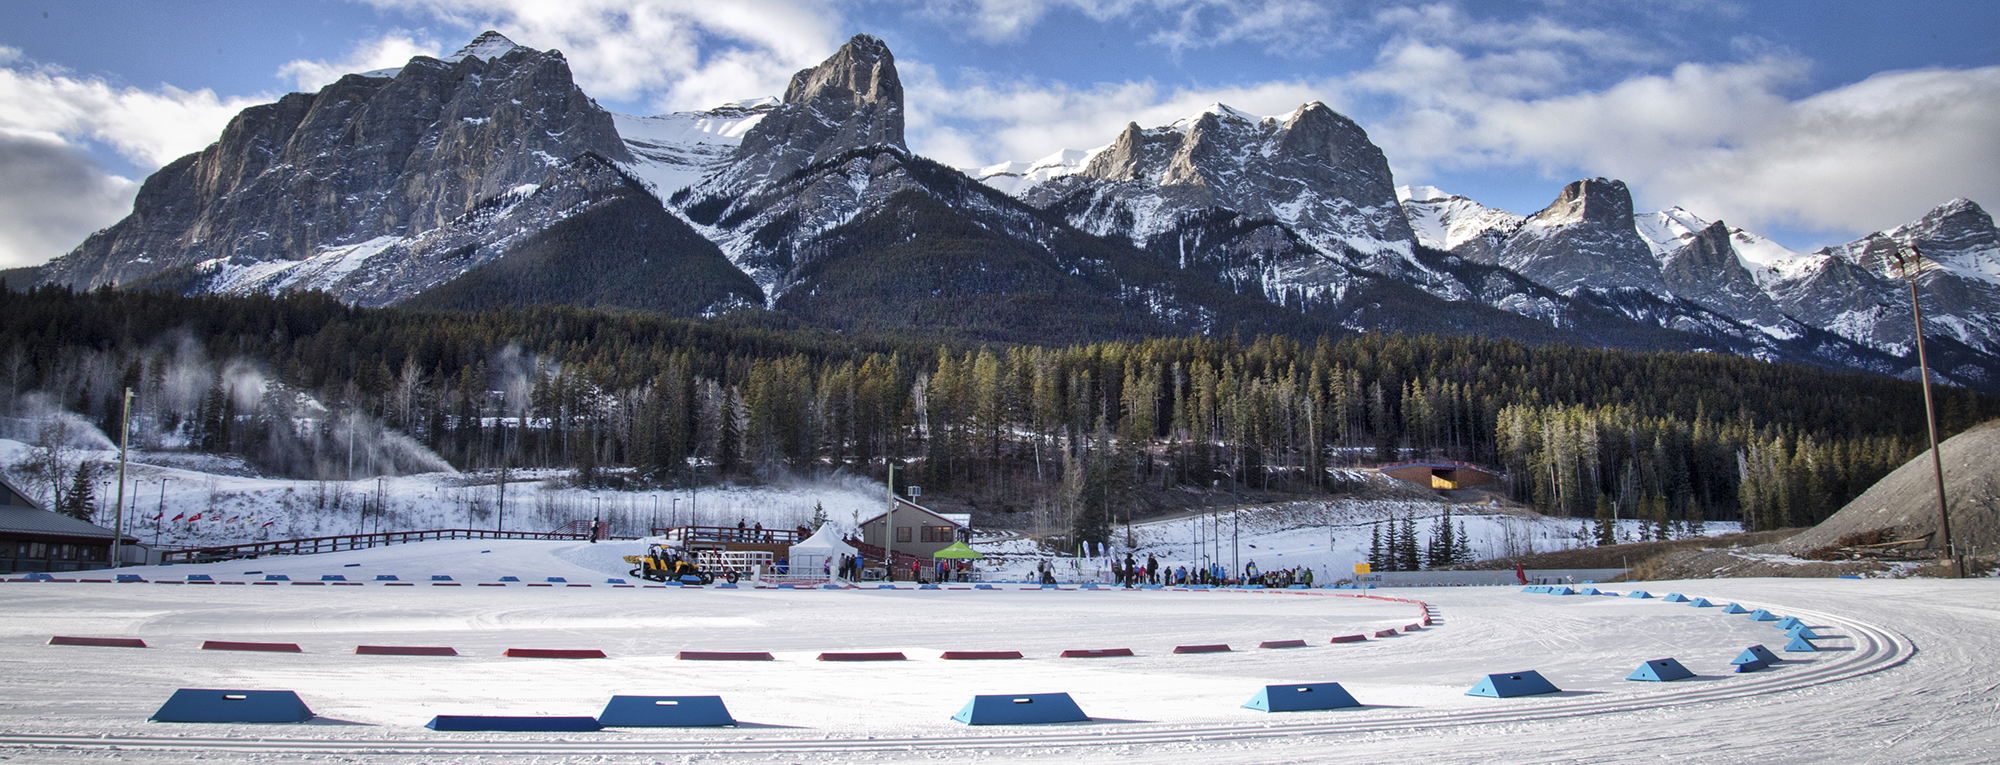 2022 Masters World Cup Canmore Canada